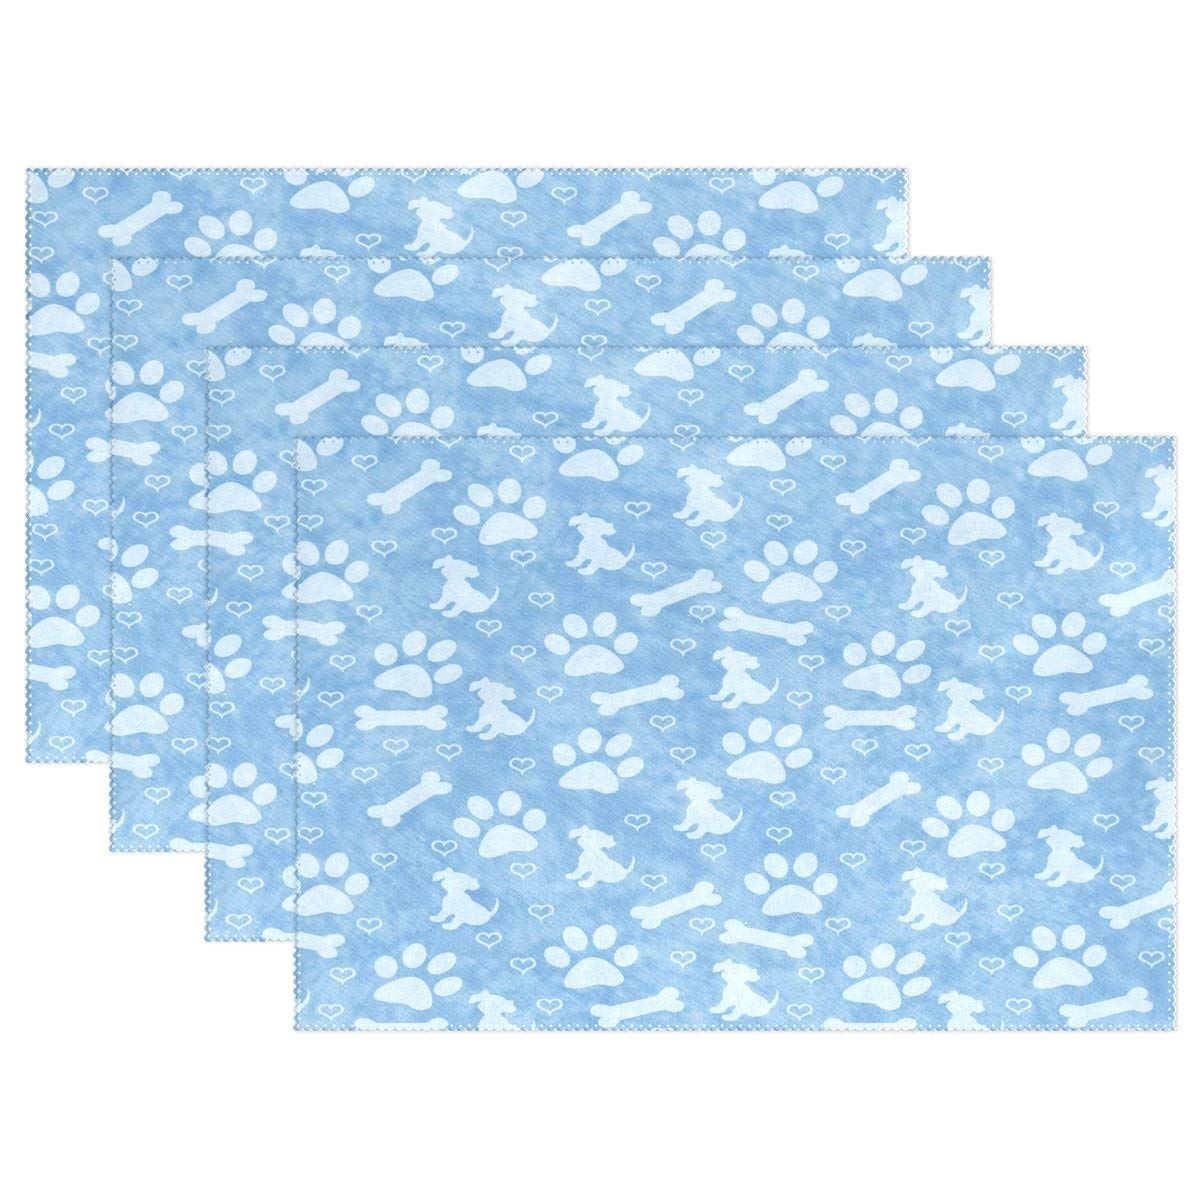 "WOZO Blue Dog Paw Prints Puppy Placemat Table Mat, Bone Heart 12"" x 18"" Polyester Table Place Mat for Kitchen Dining Room 1 Piece"